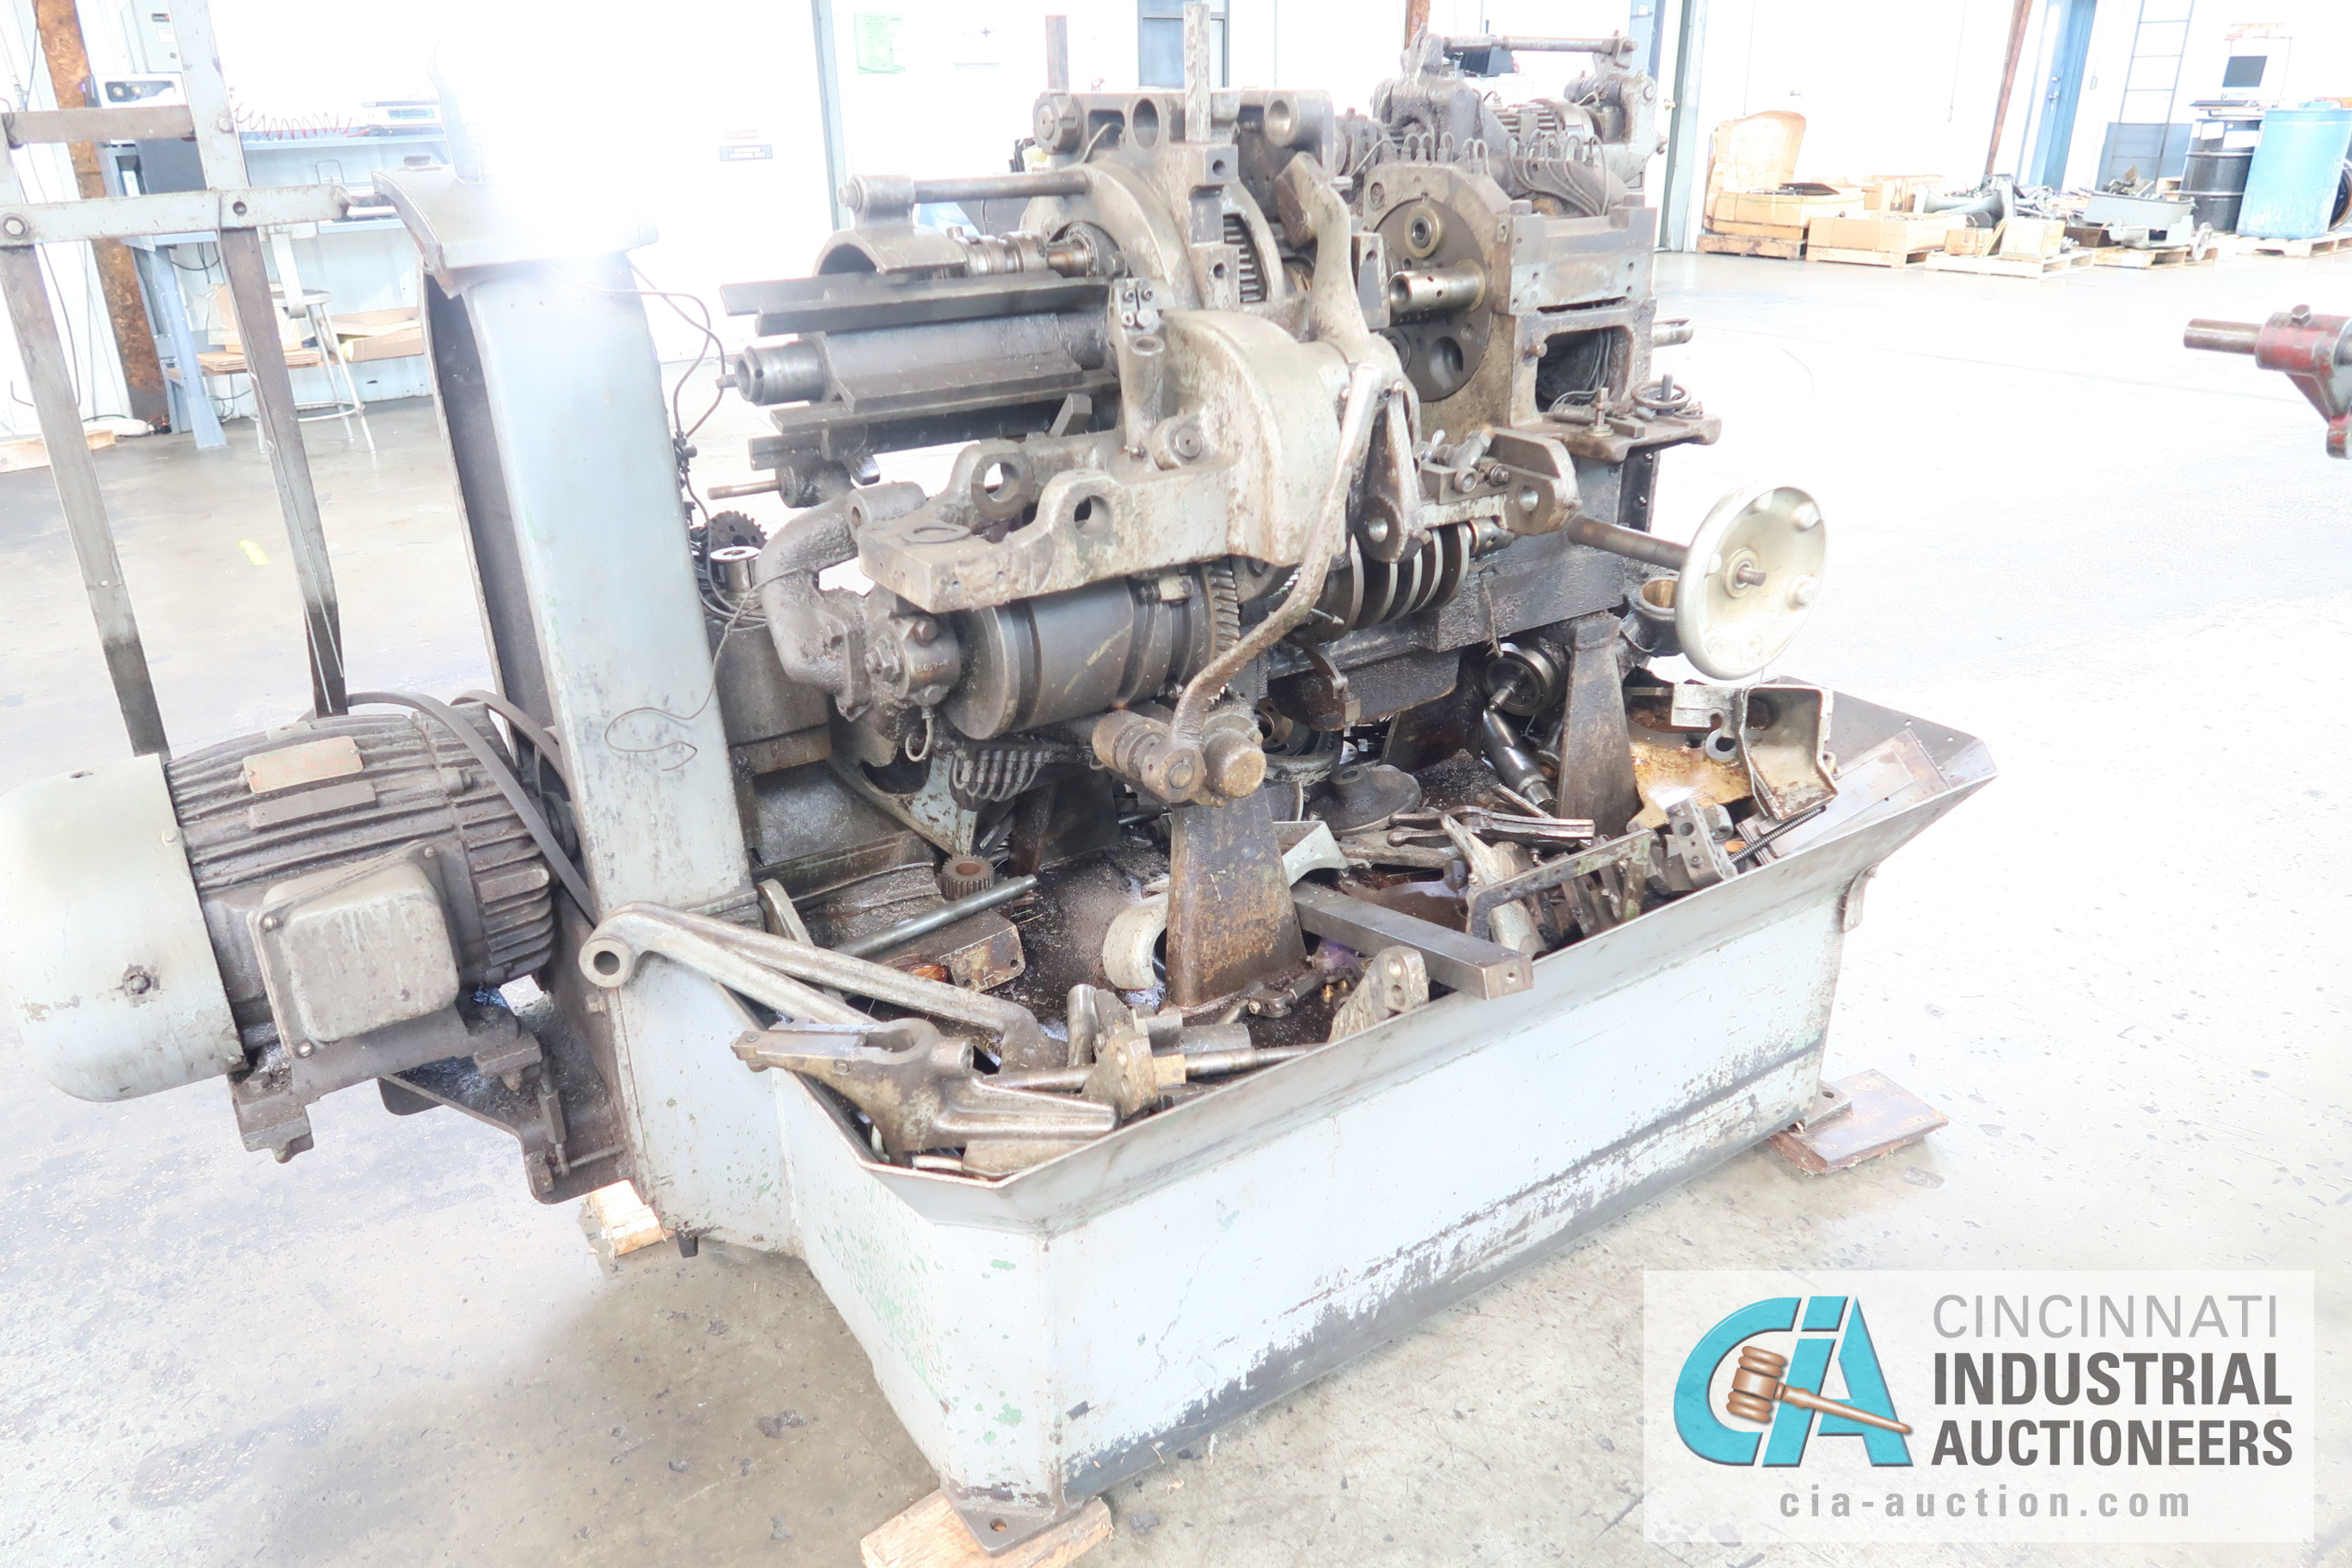 """3/4"""" DAVENPORT 5-SPINDLE SCREW MACHINE; S/N 7072 **THIS MACHINE IS PARTS ONLY SCREW MACHINE** - Image 2 of 2"""